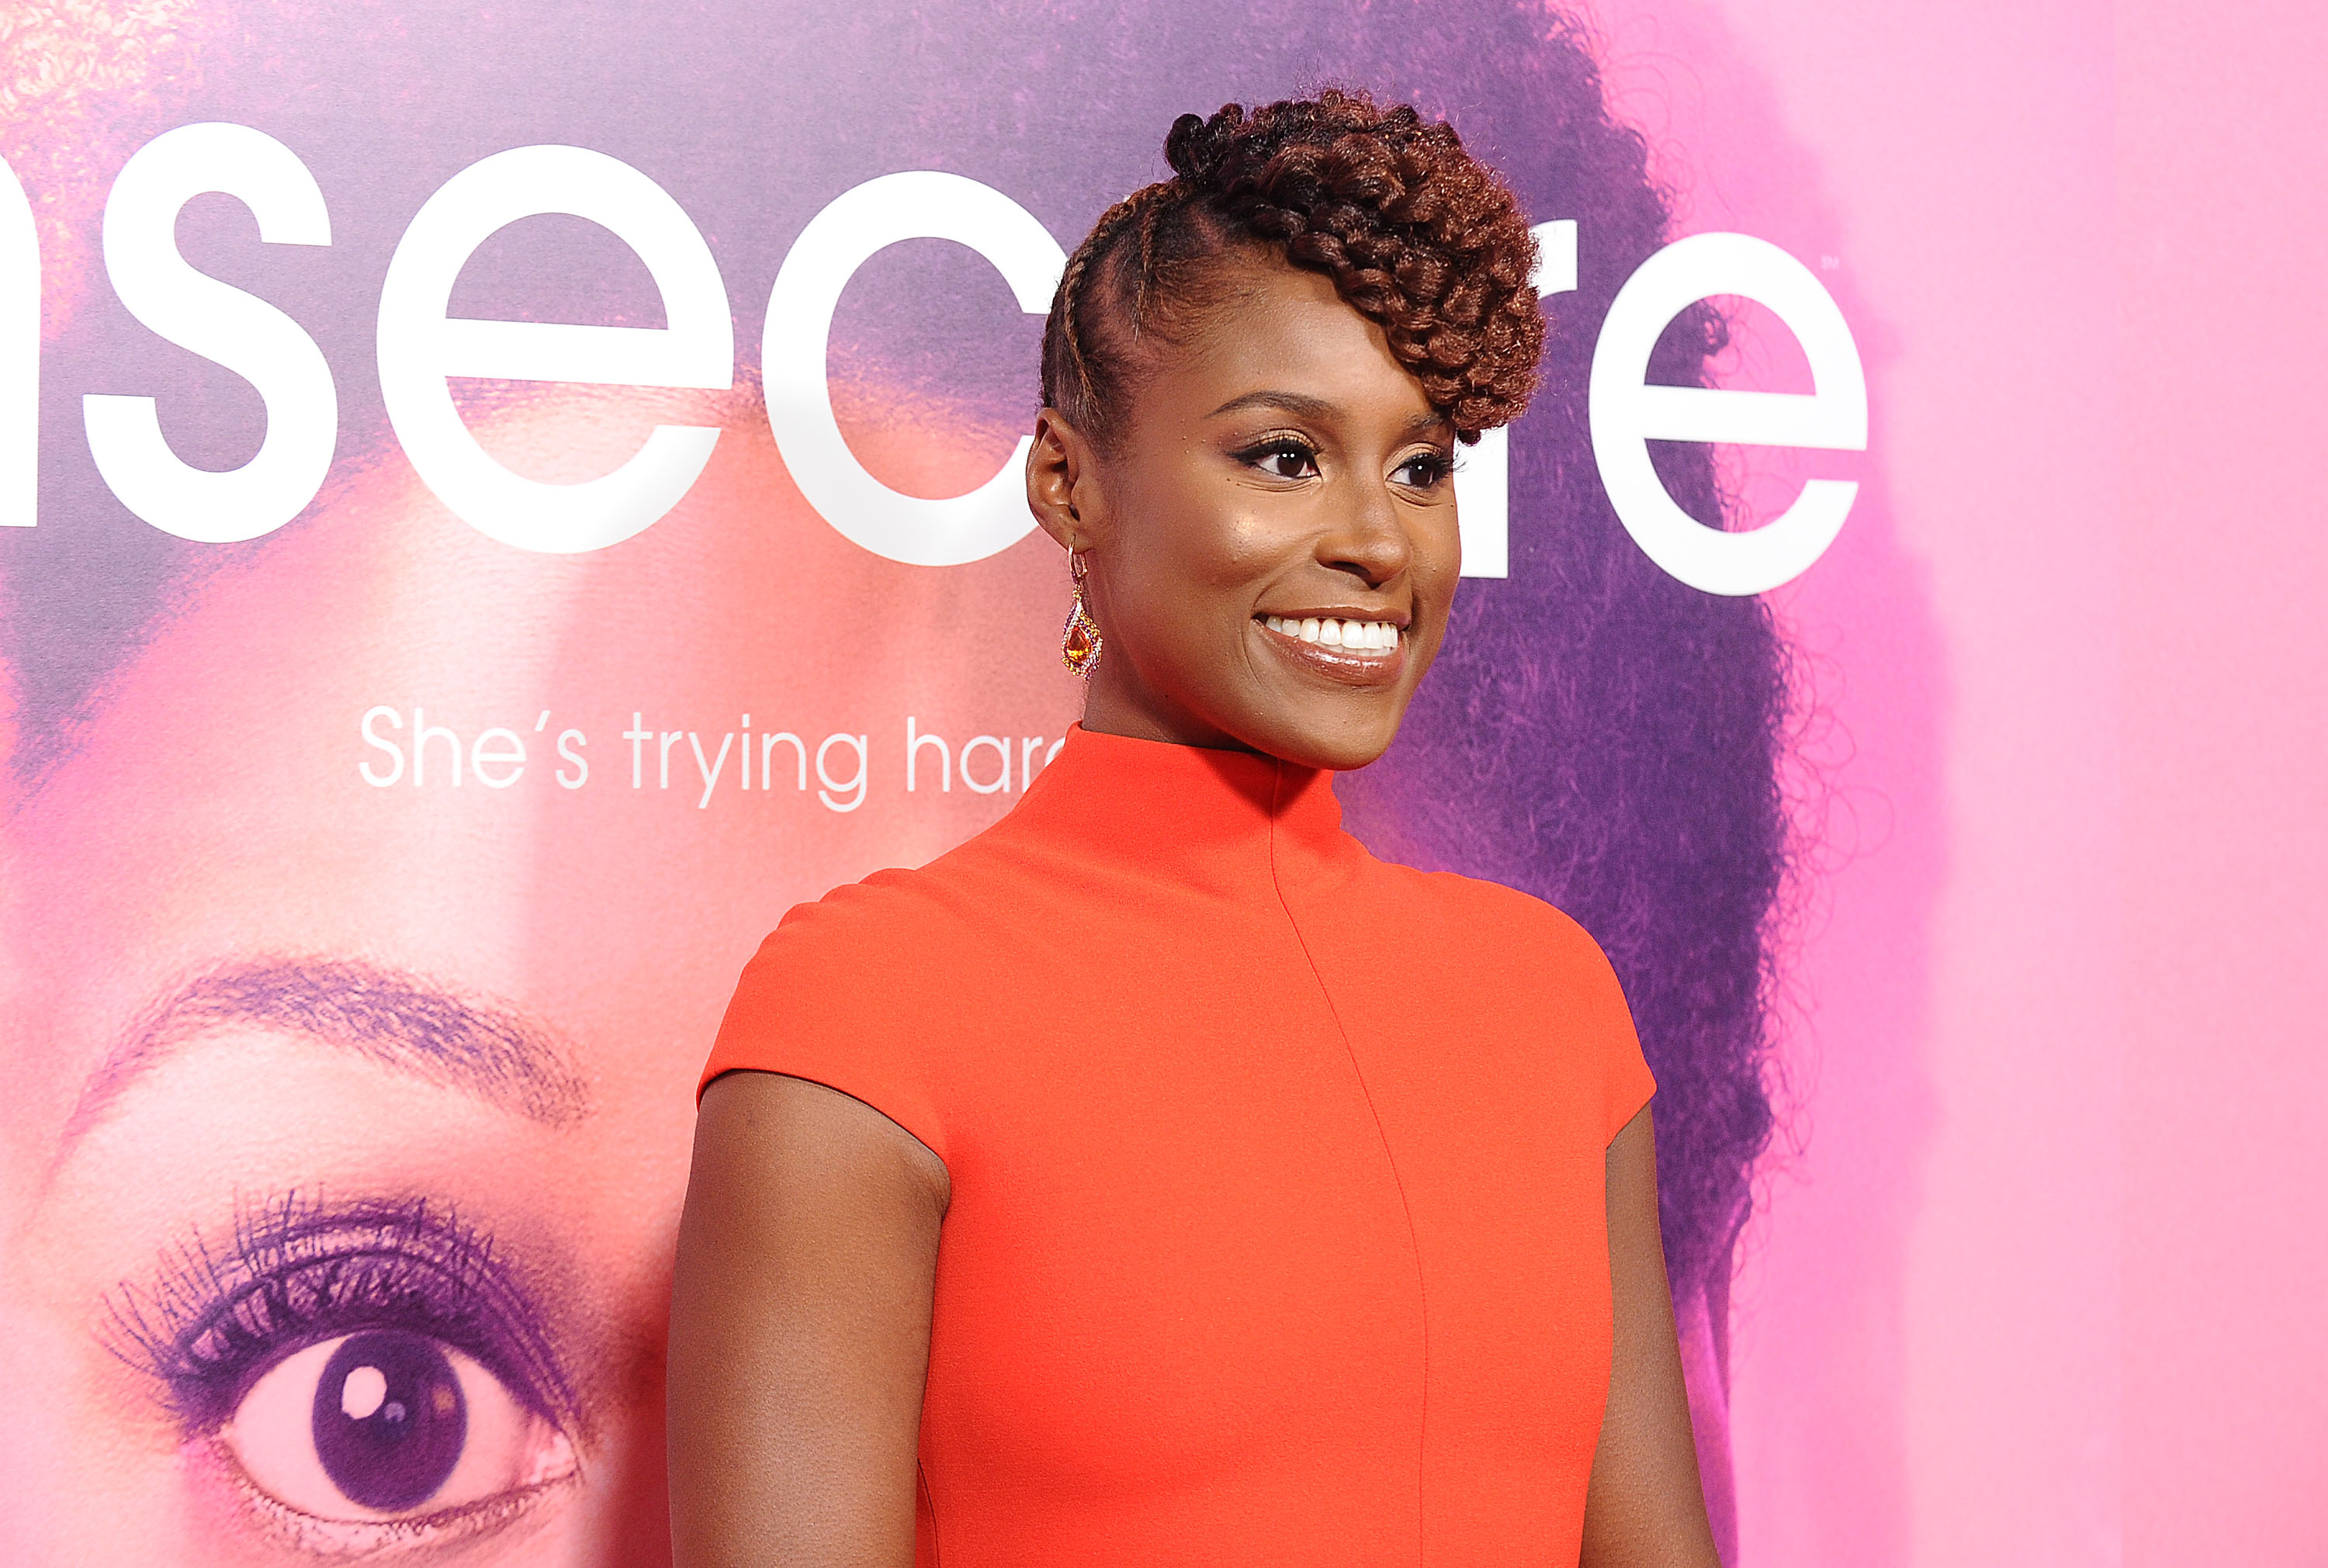 Premiere Of HBO's 'Insecure' - Arrivals